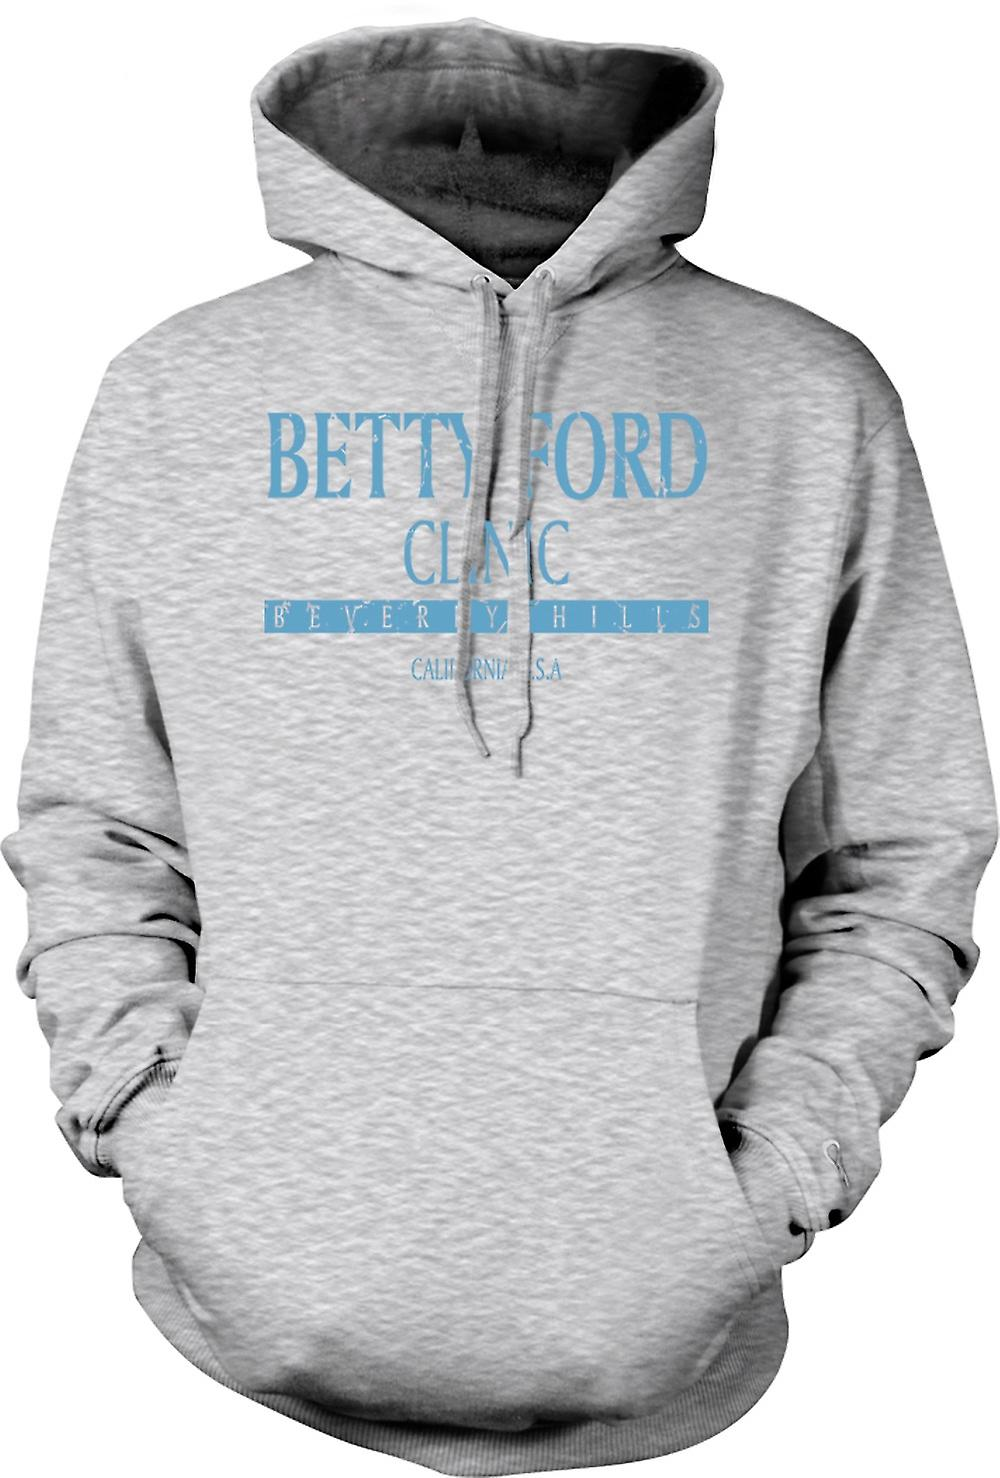 Mens Hoodie - Betty Ford Clinic - Rehab